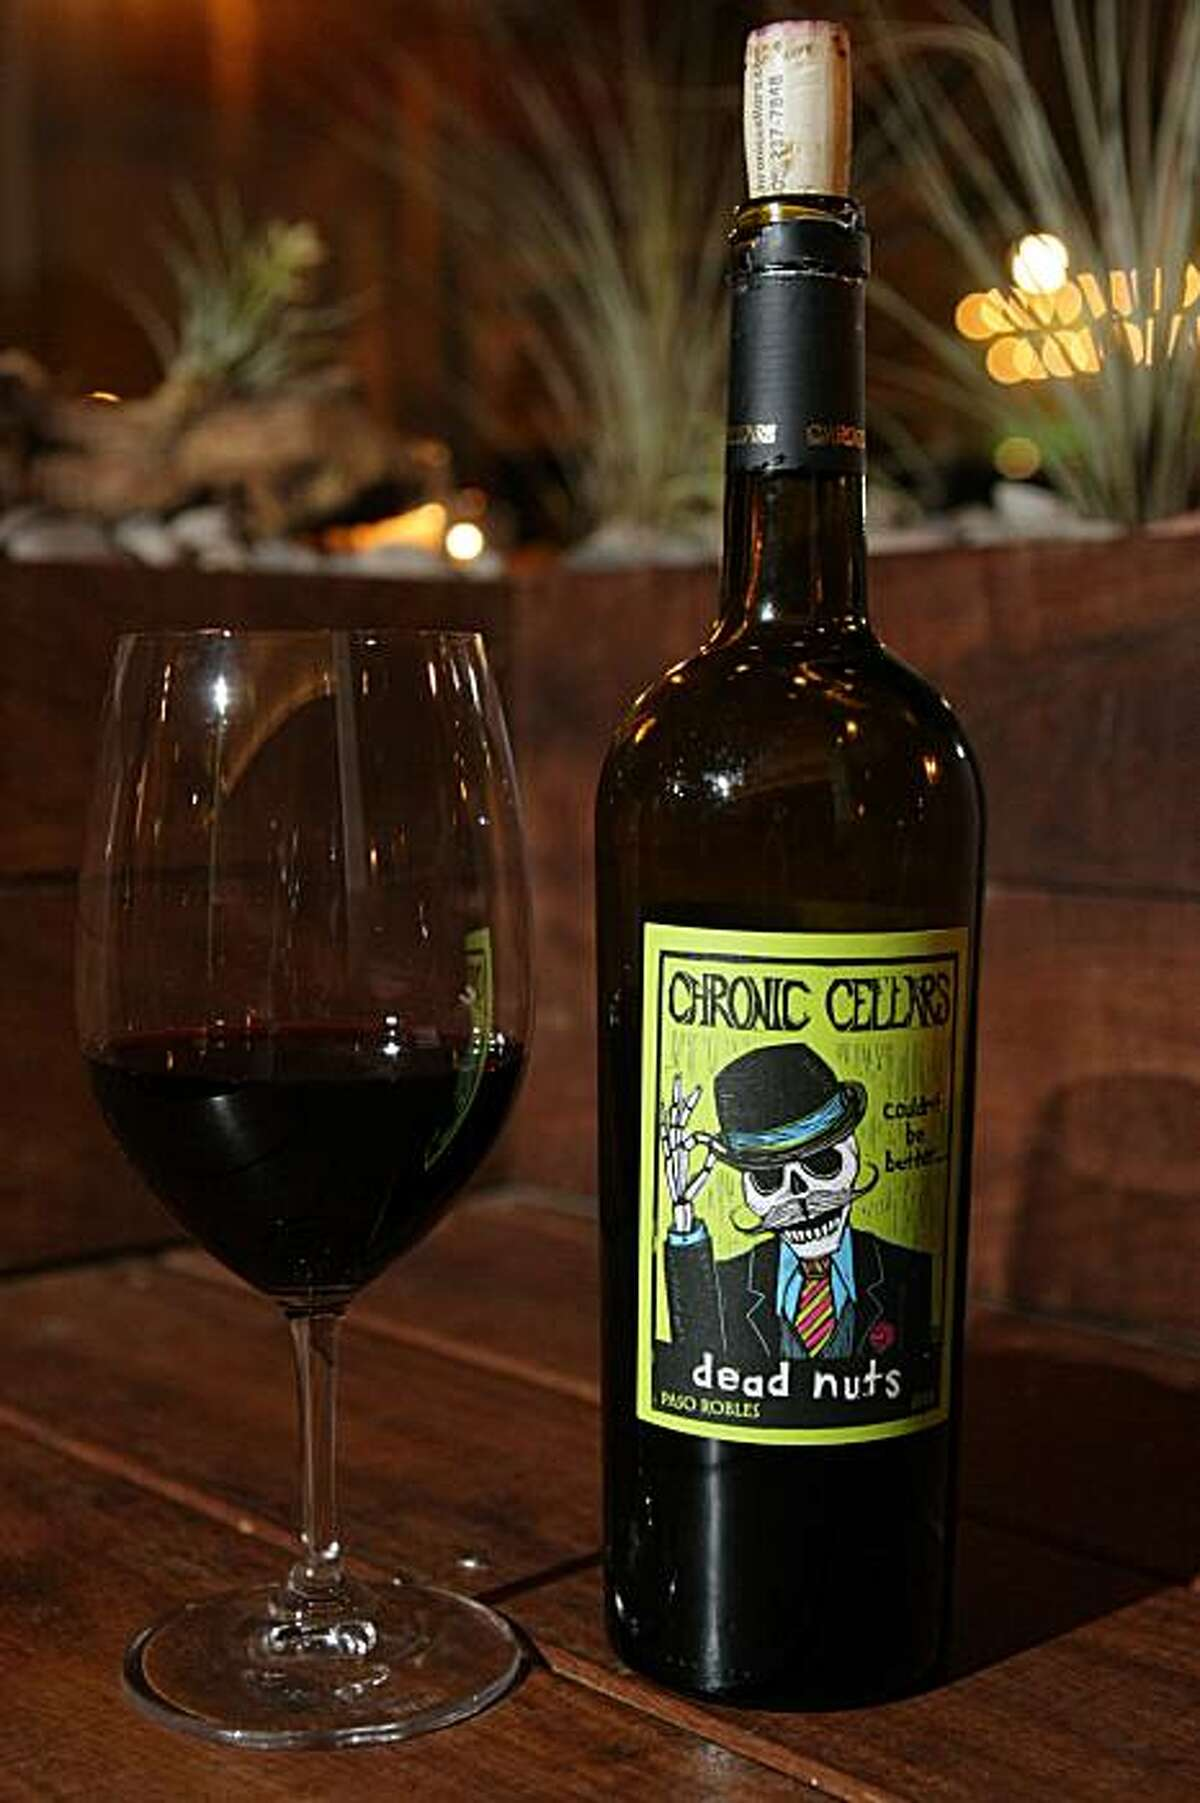 A glass of Dead Nuts red zinfandel from Chronic Cellars in Paso Robles, at Red + White Wine Bar in the Glen Park neighborhood of San Francisco, CA Friday night, February 26, 2010.